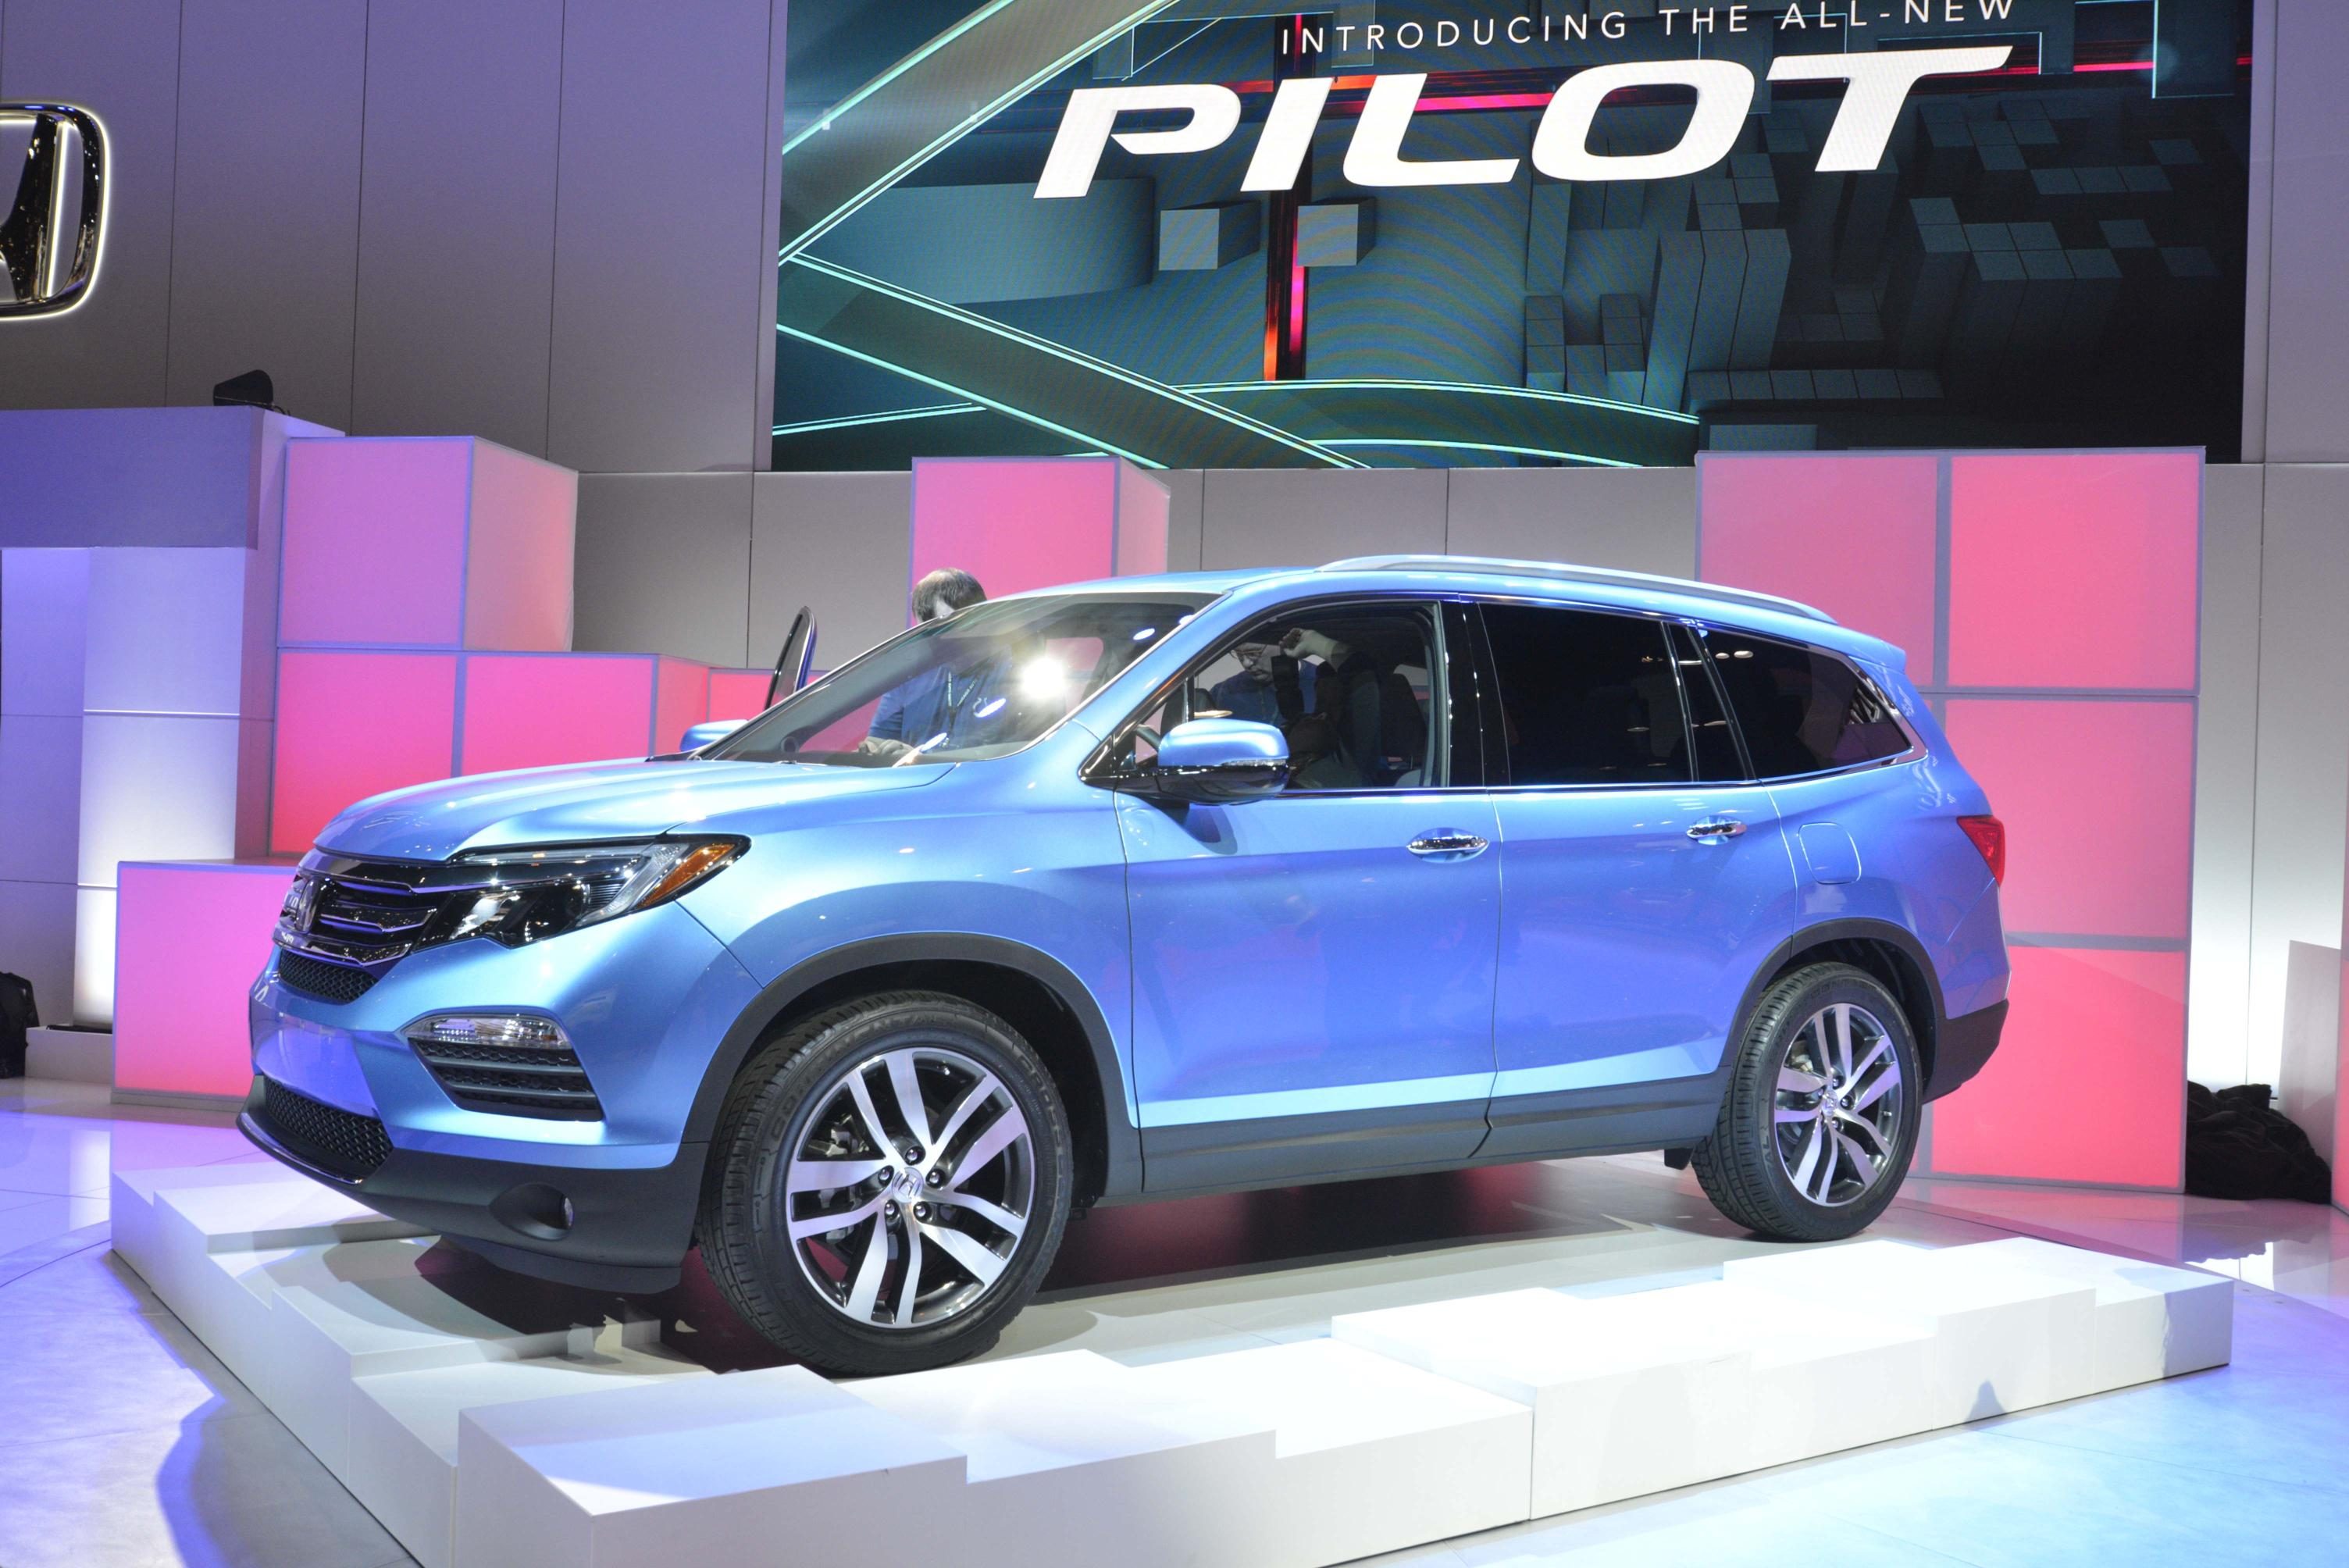 The 2016 Honda Pilot is available soon at Cookeville Honda near Nashville & McMinnville TN